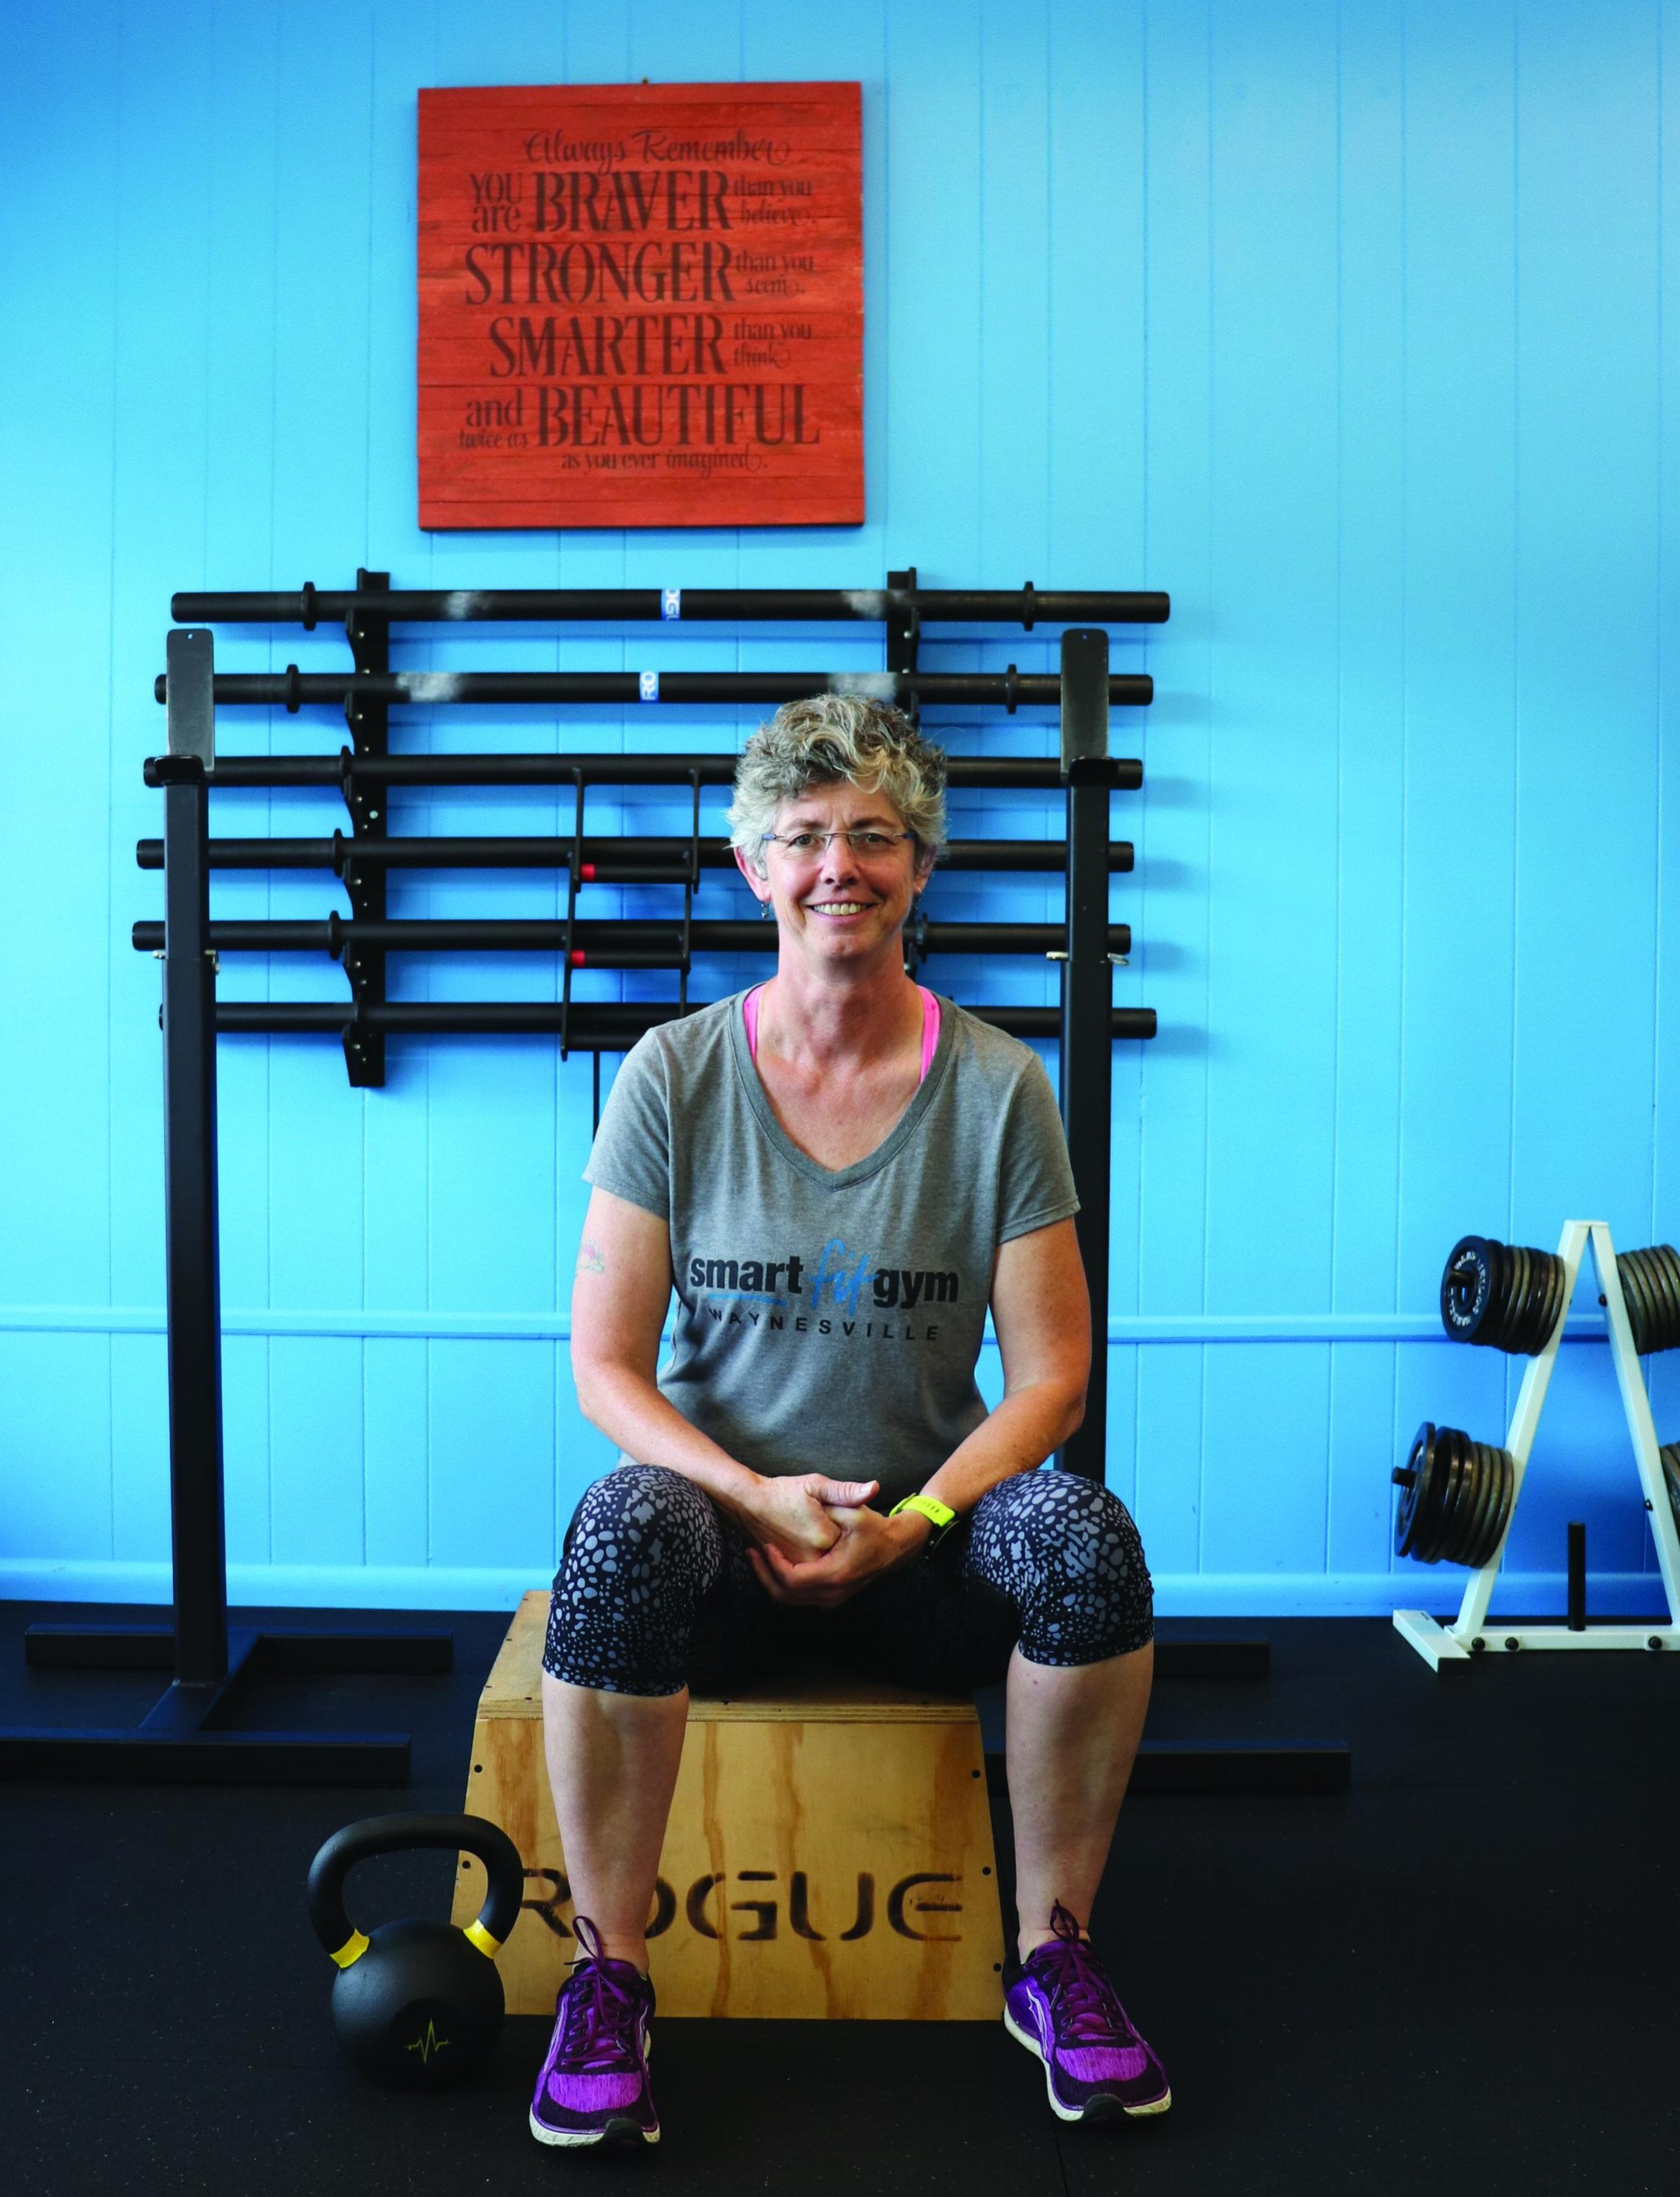 Diane Giermek(Trainer & Specialist) - I've always enjoyed being physically active. I went into the Army after high school and loved the experience of becoming strong. But it wasn't until I was 51 that I decided to register for the Lake Logan Sprint Triathlon so that I would have a reason to learn to swim. And learning to ride a bike on the roads and hills of Haywood County was a much different experience than riding a bike as a kid! I enjoy running 5K-Half marathons. Strength training has greatly improved my ability to continue to be active, but we need to be more than just strong. I've dealt with injuries over the years…it's frustrating and humbling. Each time I endeavor to learn more about how our bodies work and what they need. I've come to appreciate the importance of recovery work…taking care of the body after pushing its limits. Understanding the importance of proper nutrition, hydration and mobility work are tools I've incorporated in my training and bring to my clients.You will learn:Range of Motion Biofeedback testing to ensure the workout is challenging, but not overworking youFunctional movement exercisesProper form and technique